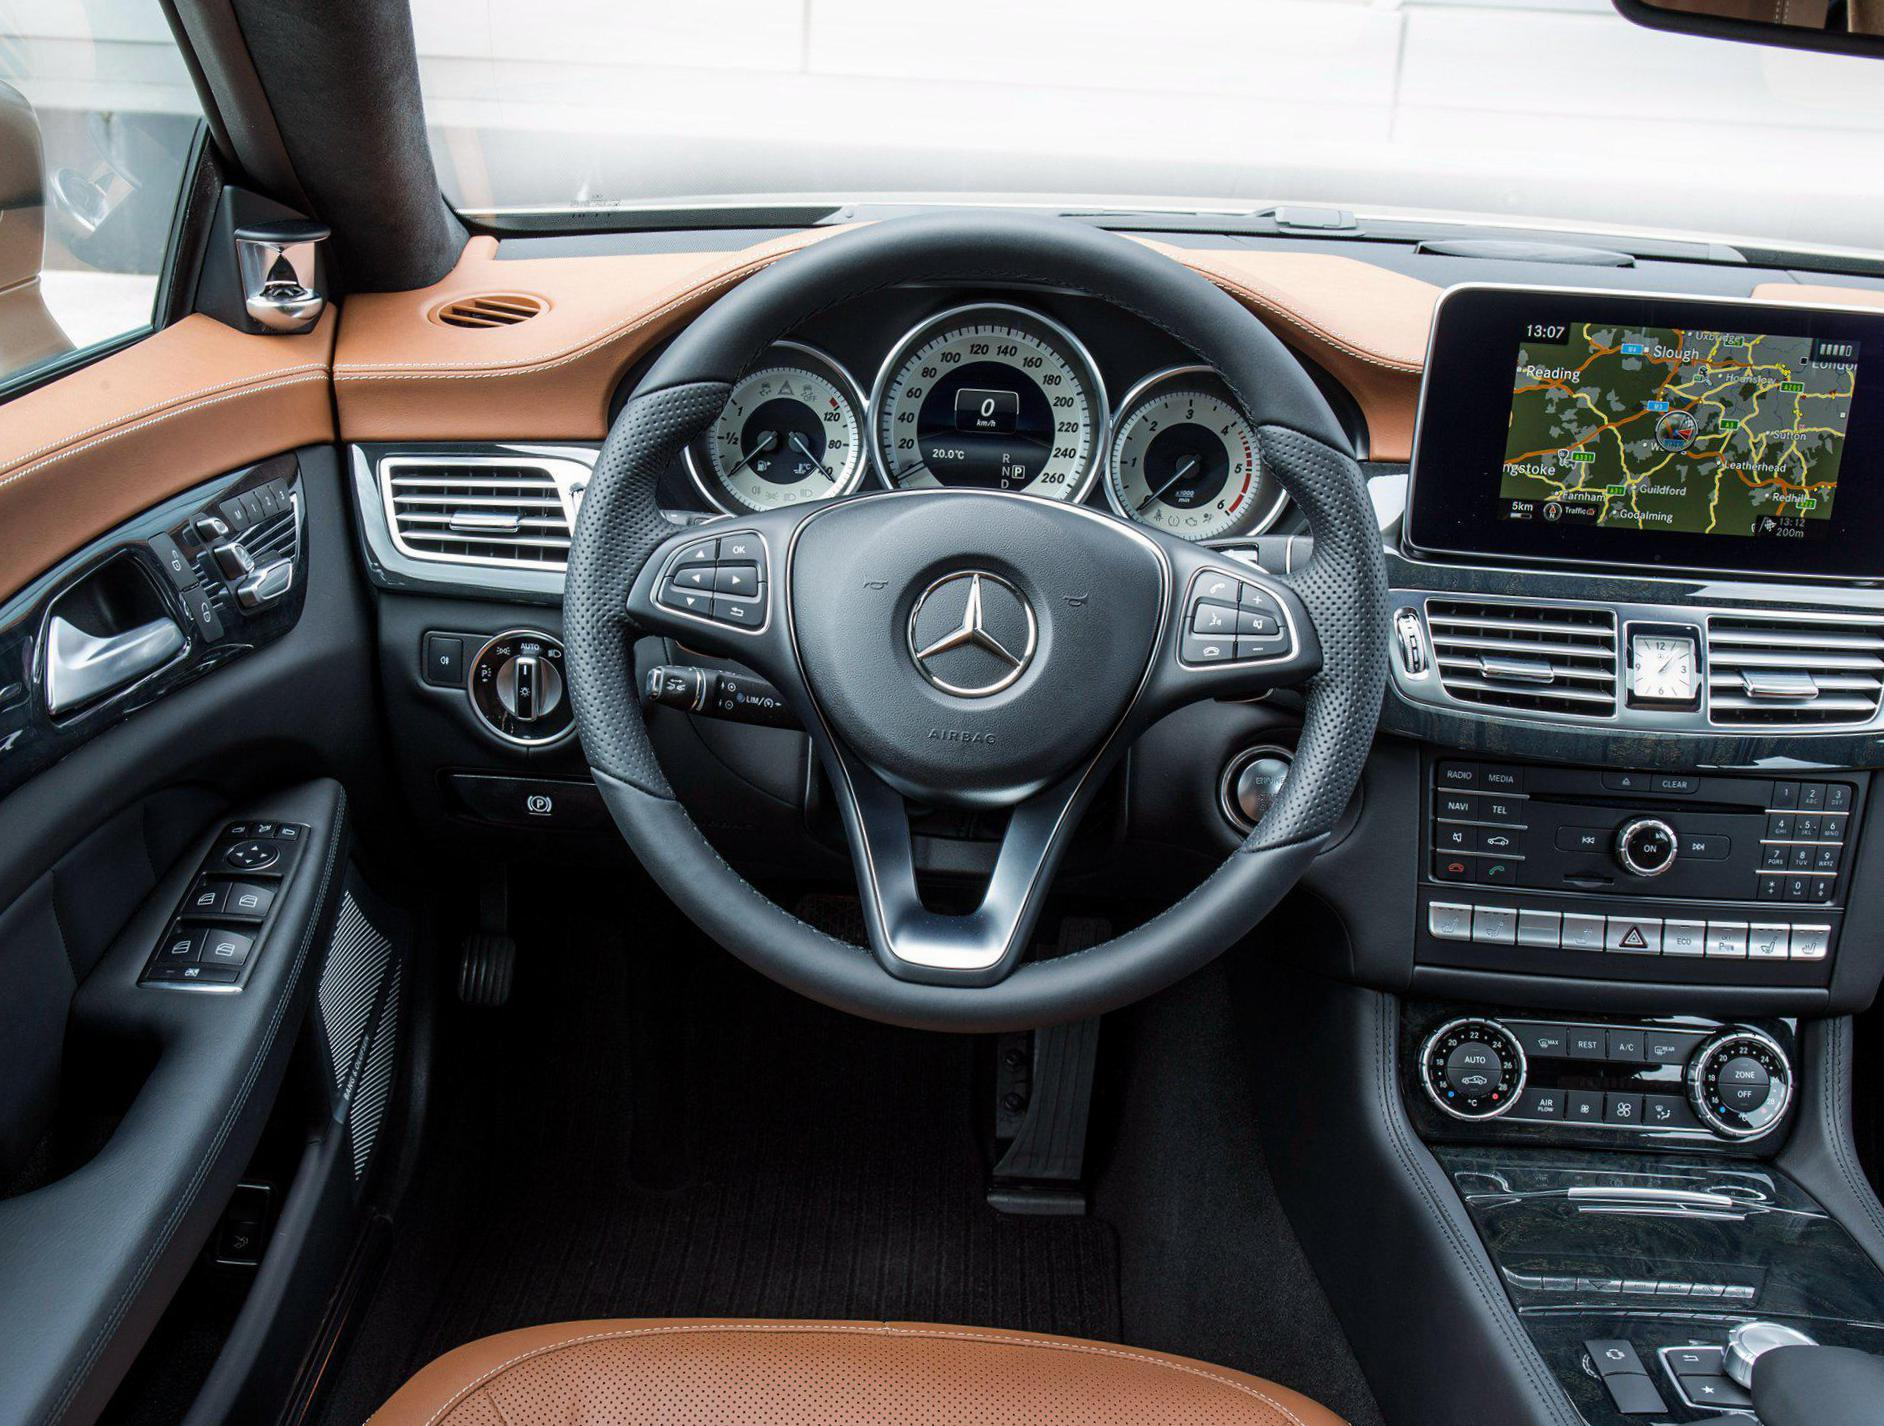 Mercedes CLS Shooting Brake (X218) price 2011